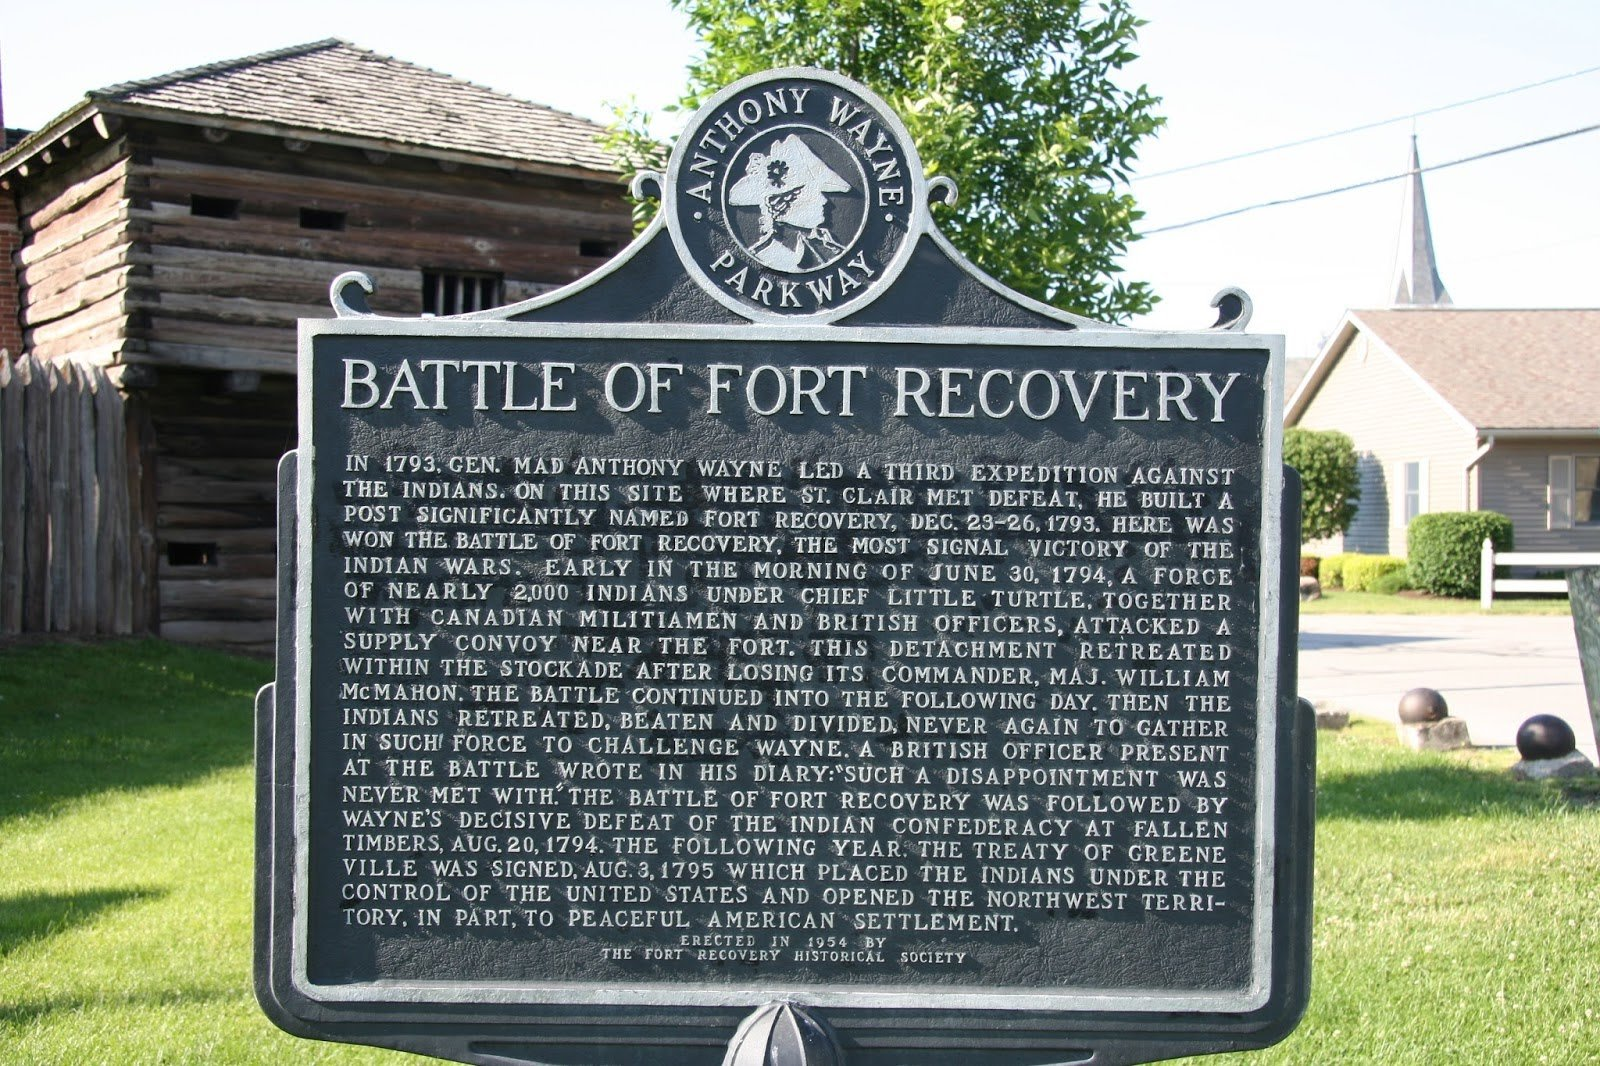 Anthony Wayne Parkway sign, in remembrance of the Battle of Fort Recovery that was constructed in 1954 by the Historical Society.